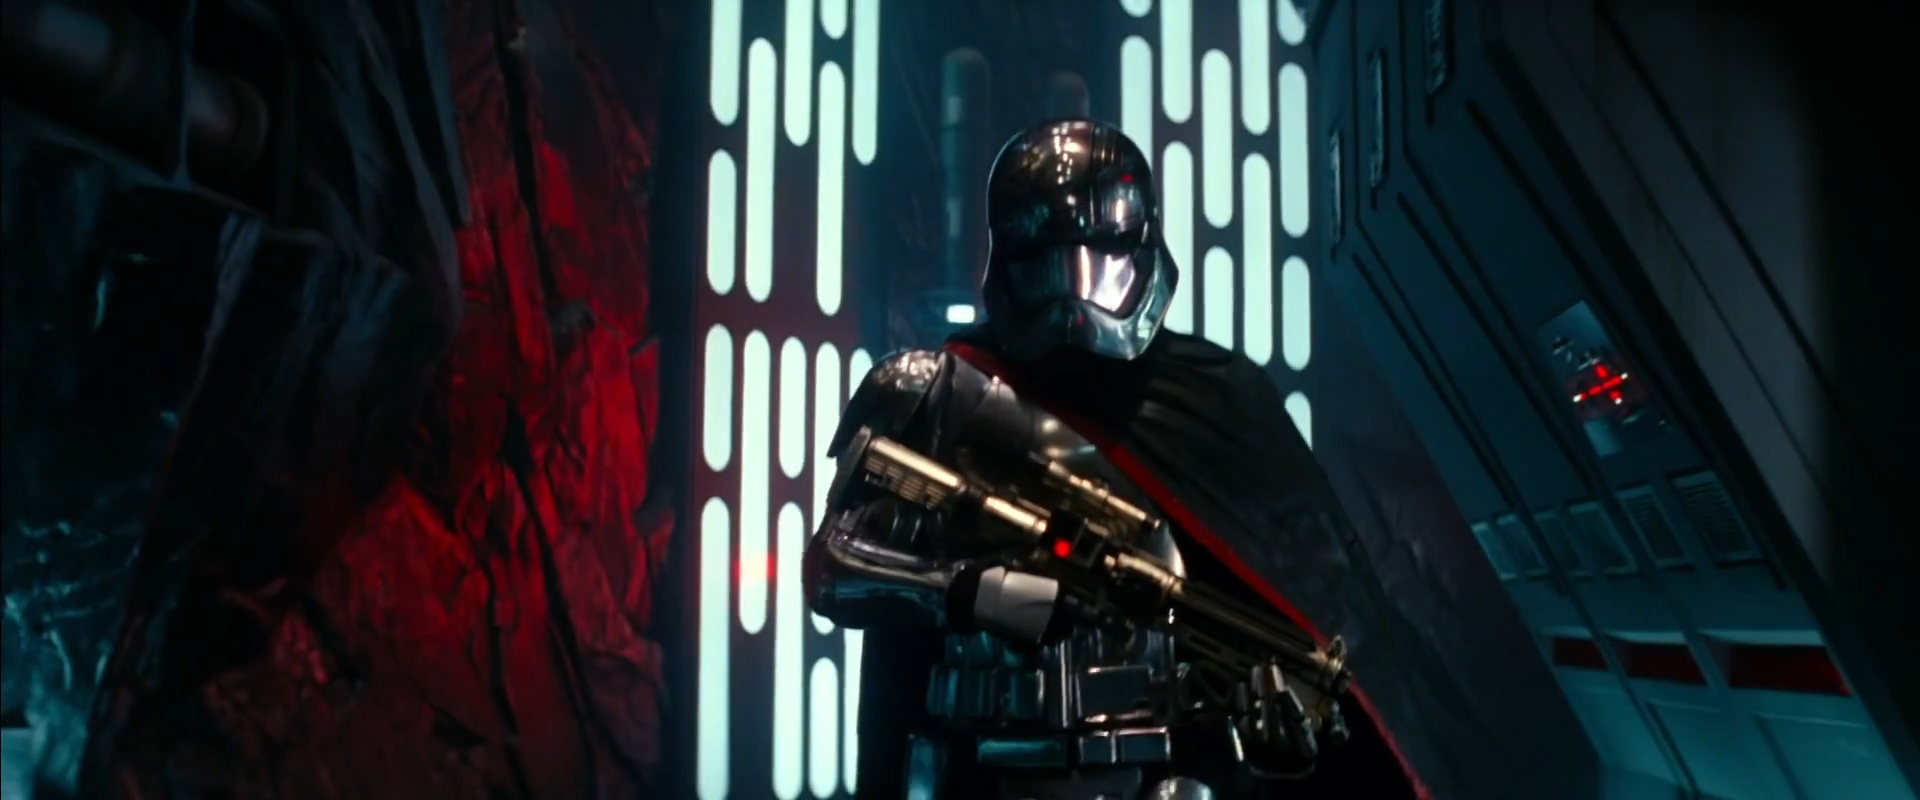 """Not the same guy as Kylo Ren. Google says this might be a """"Chrome Trooper""""?"""